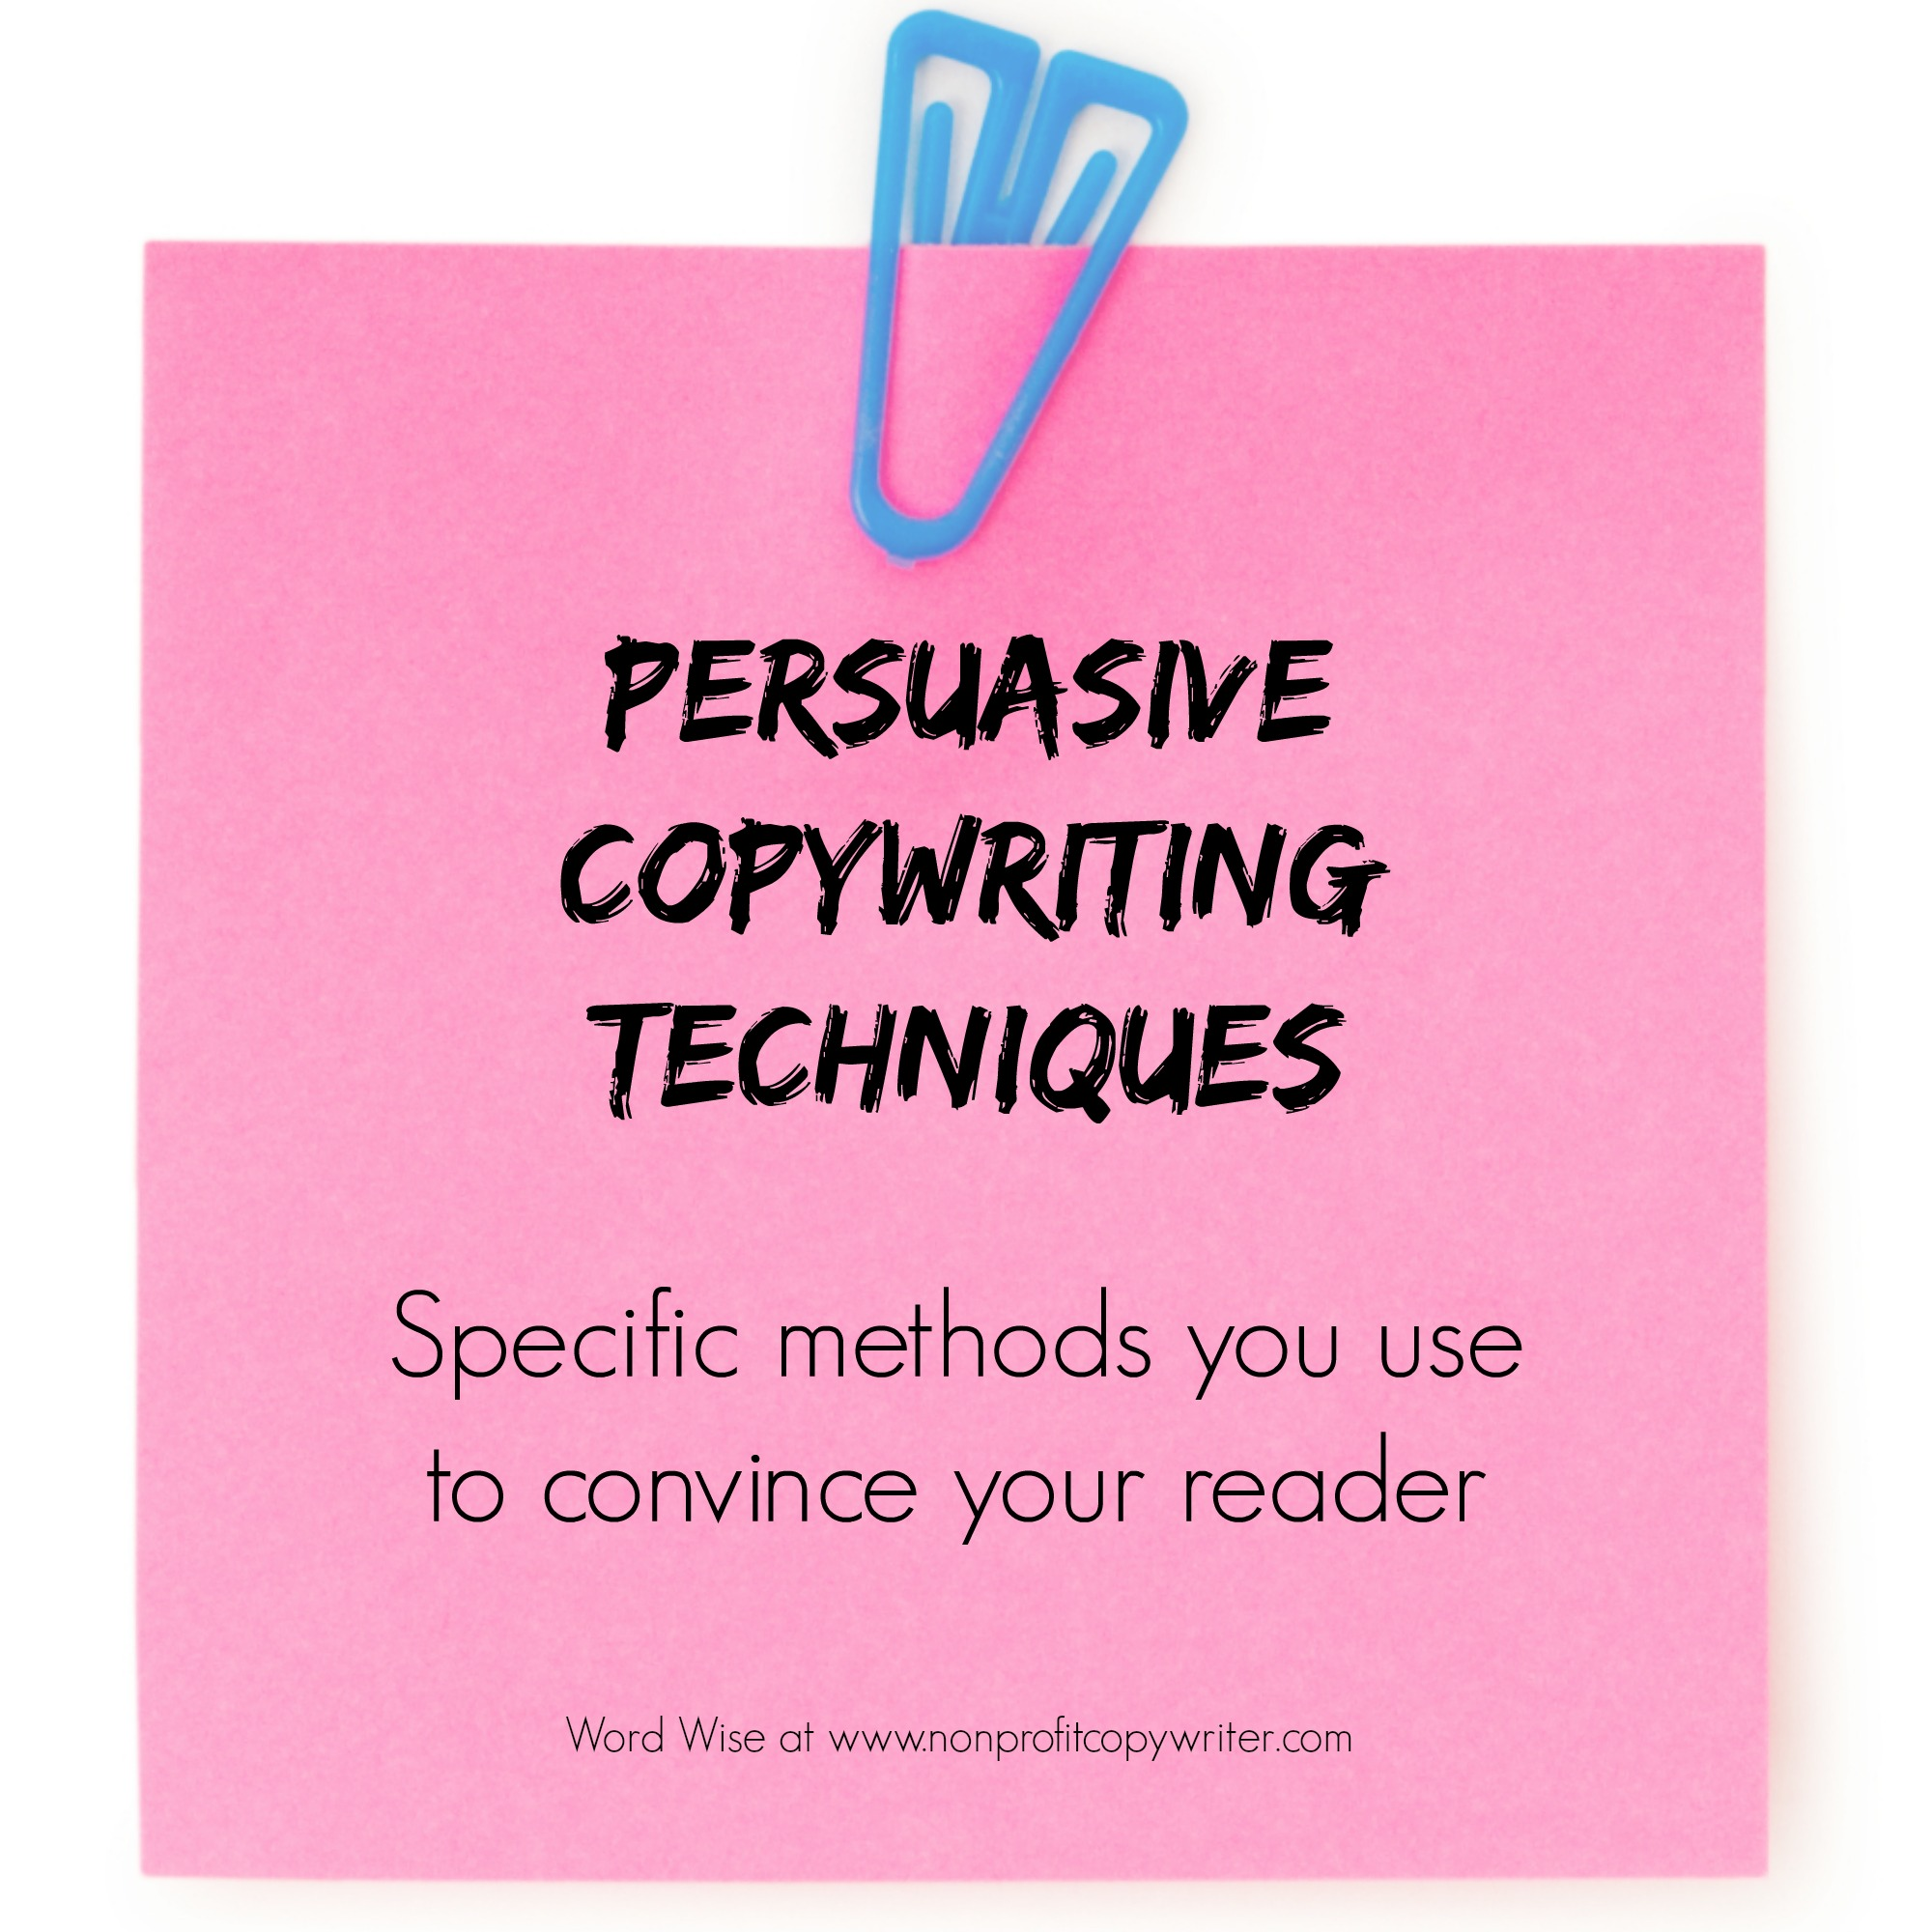 Persuasive Copywriting Techniques: the top 10 with Word Wise at Nonprofit Copywriter